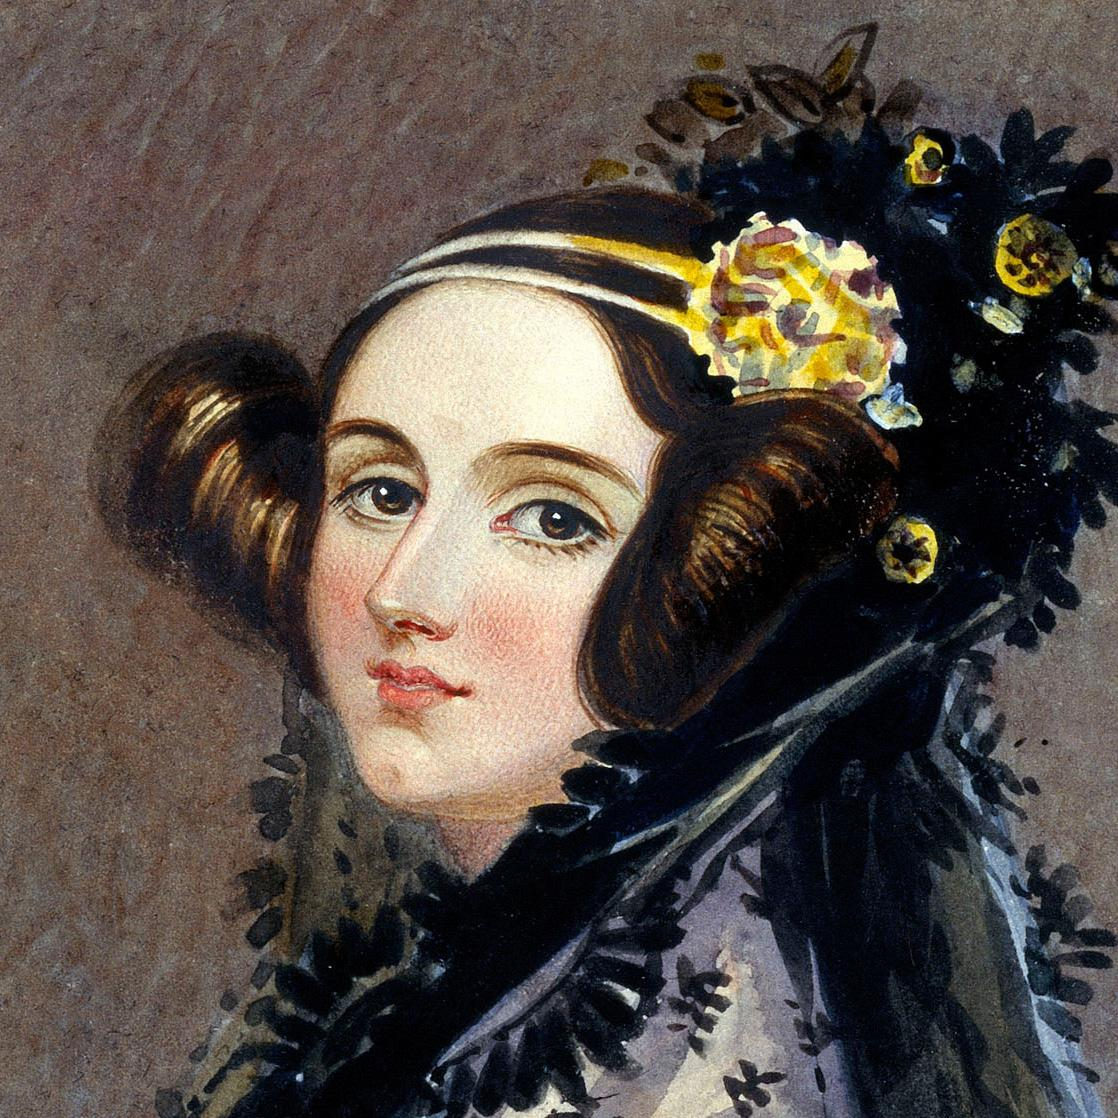 Happy #AdaLovelaceDay to the women that broke new ground in STEM & those who continue to inspire future generations. http://t.co/Hh7ZePjel0